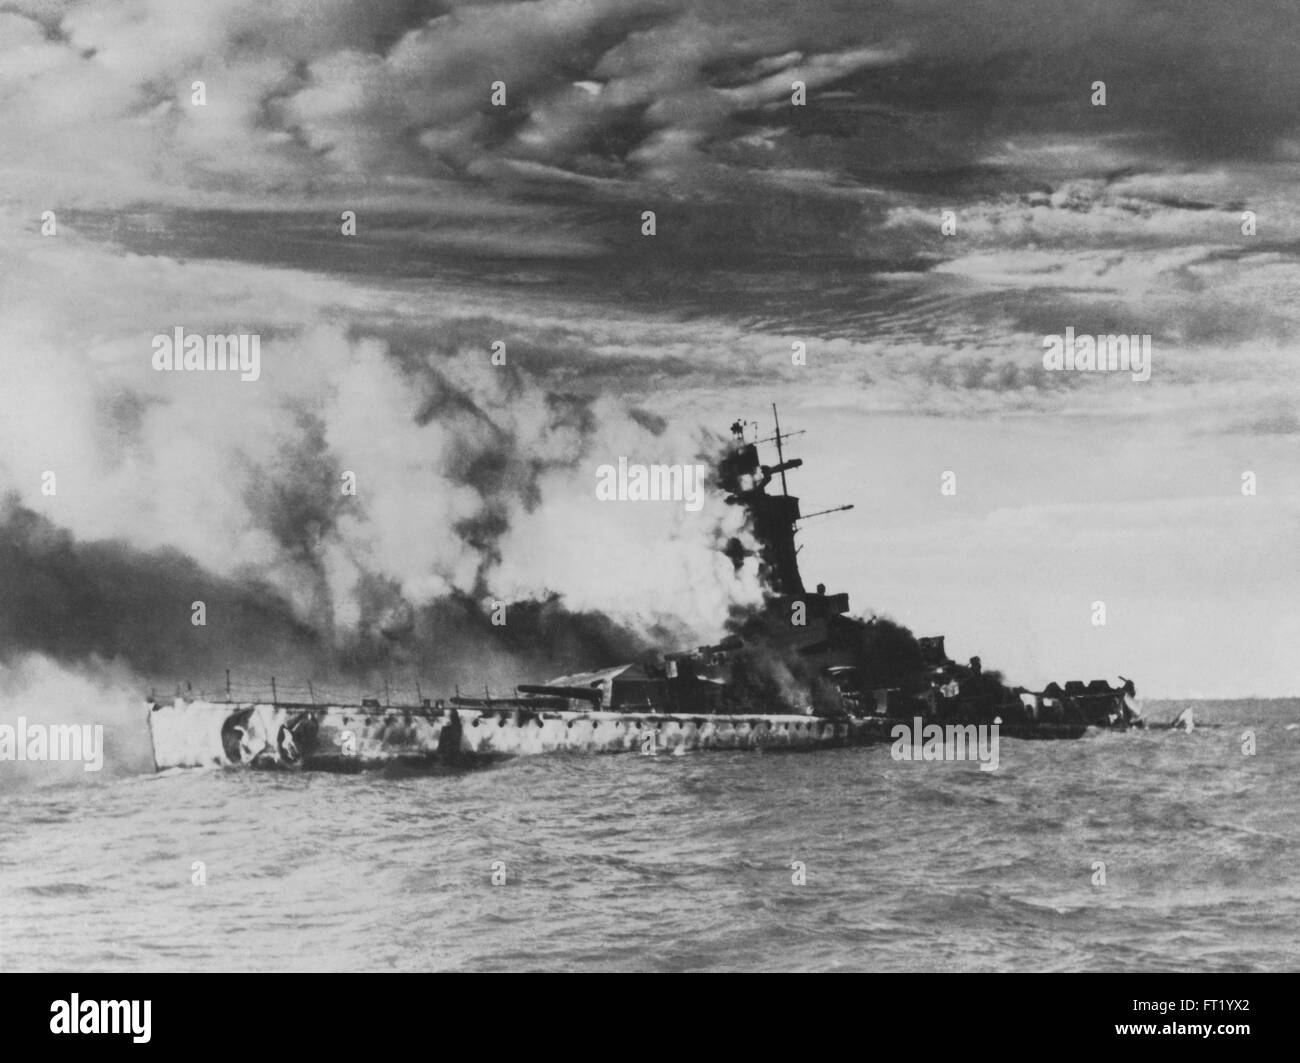 Admiral Graf Spee German Pocket battleship sinking and being destroyed as it was scuttled on the River Plate, Uruguay - Stock Image